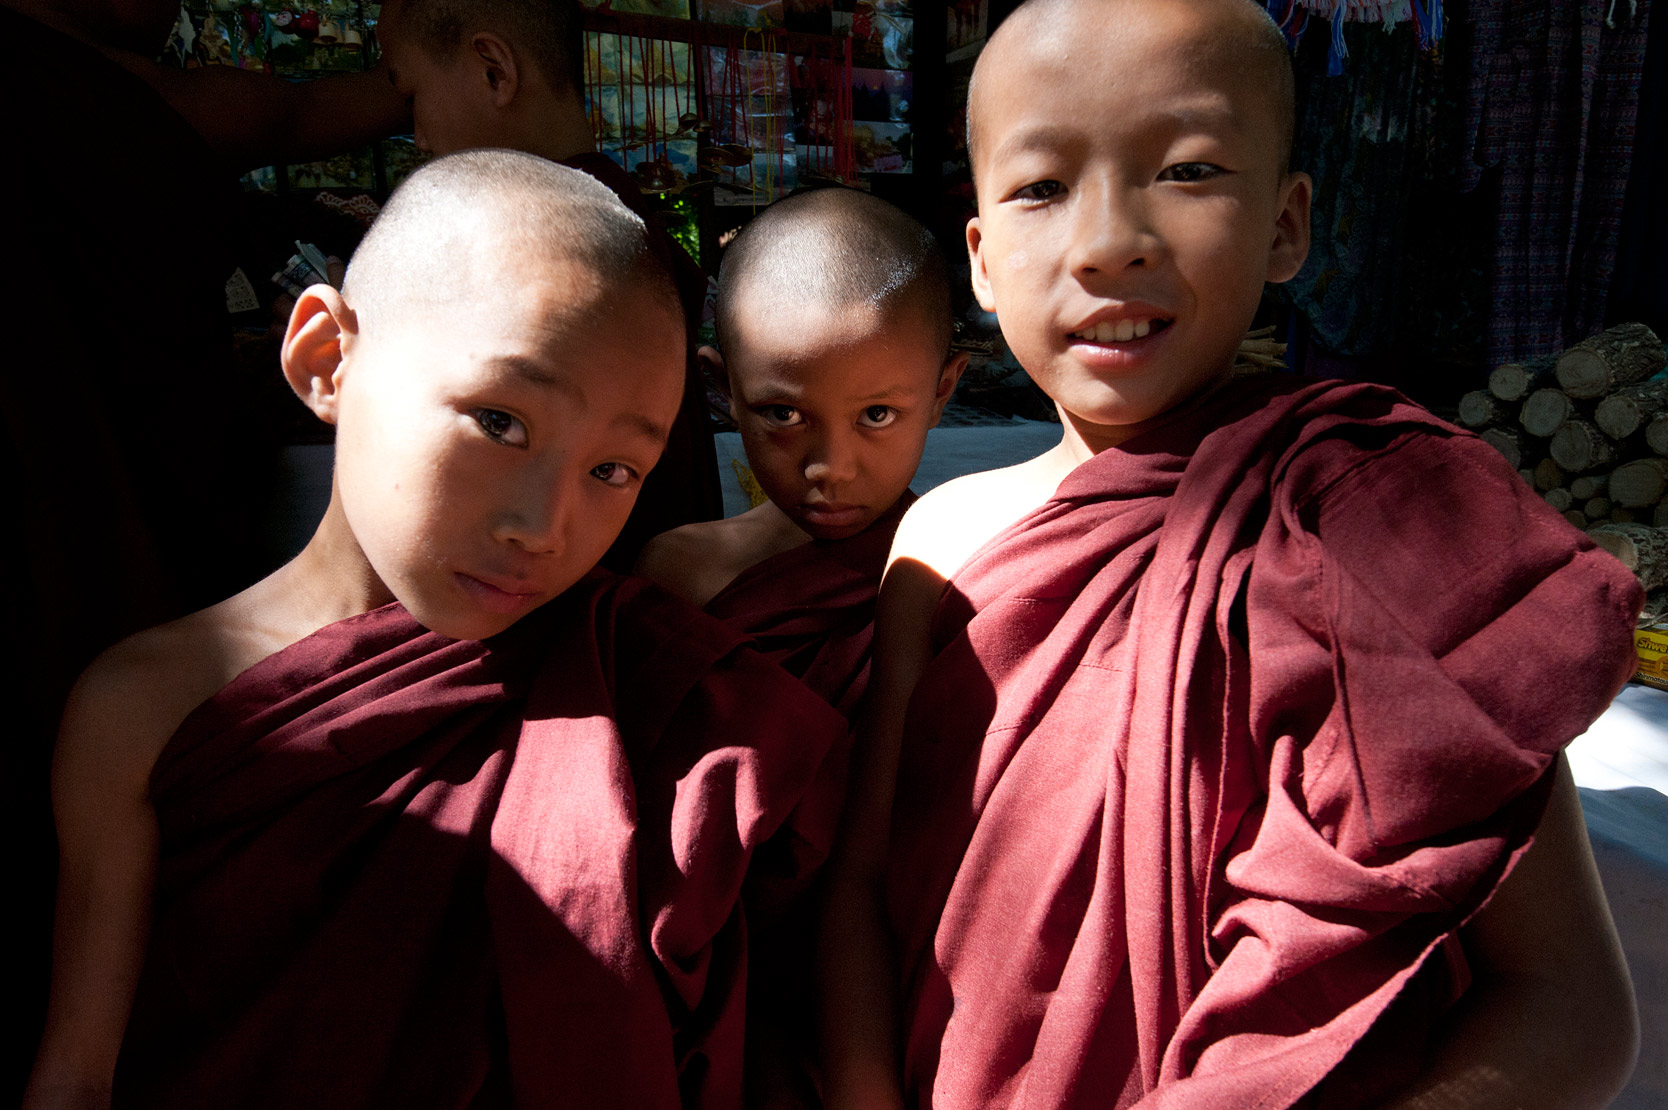 Three young shaven headed monks in red robes on a day off visiting Mingun looking at a market stall, Mingun.